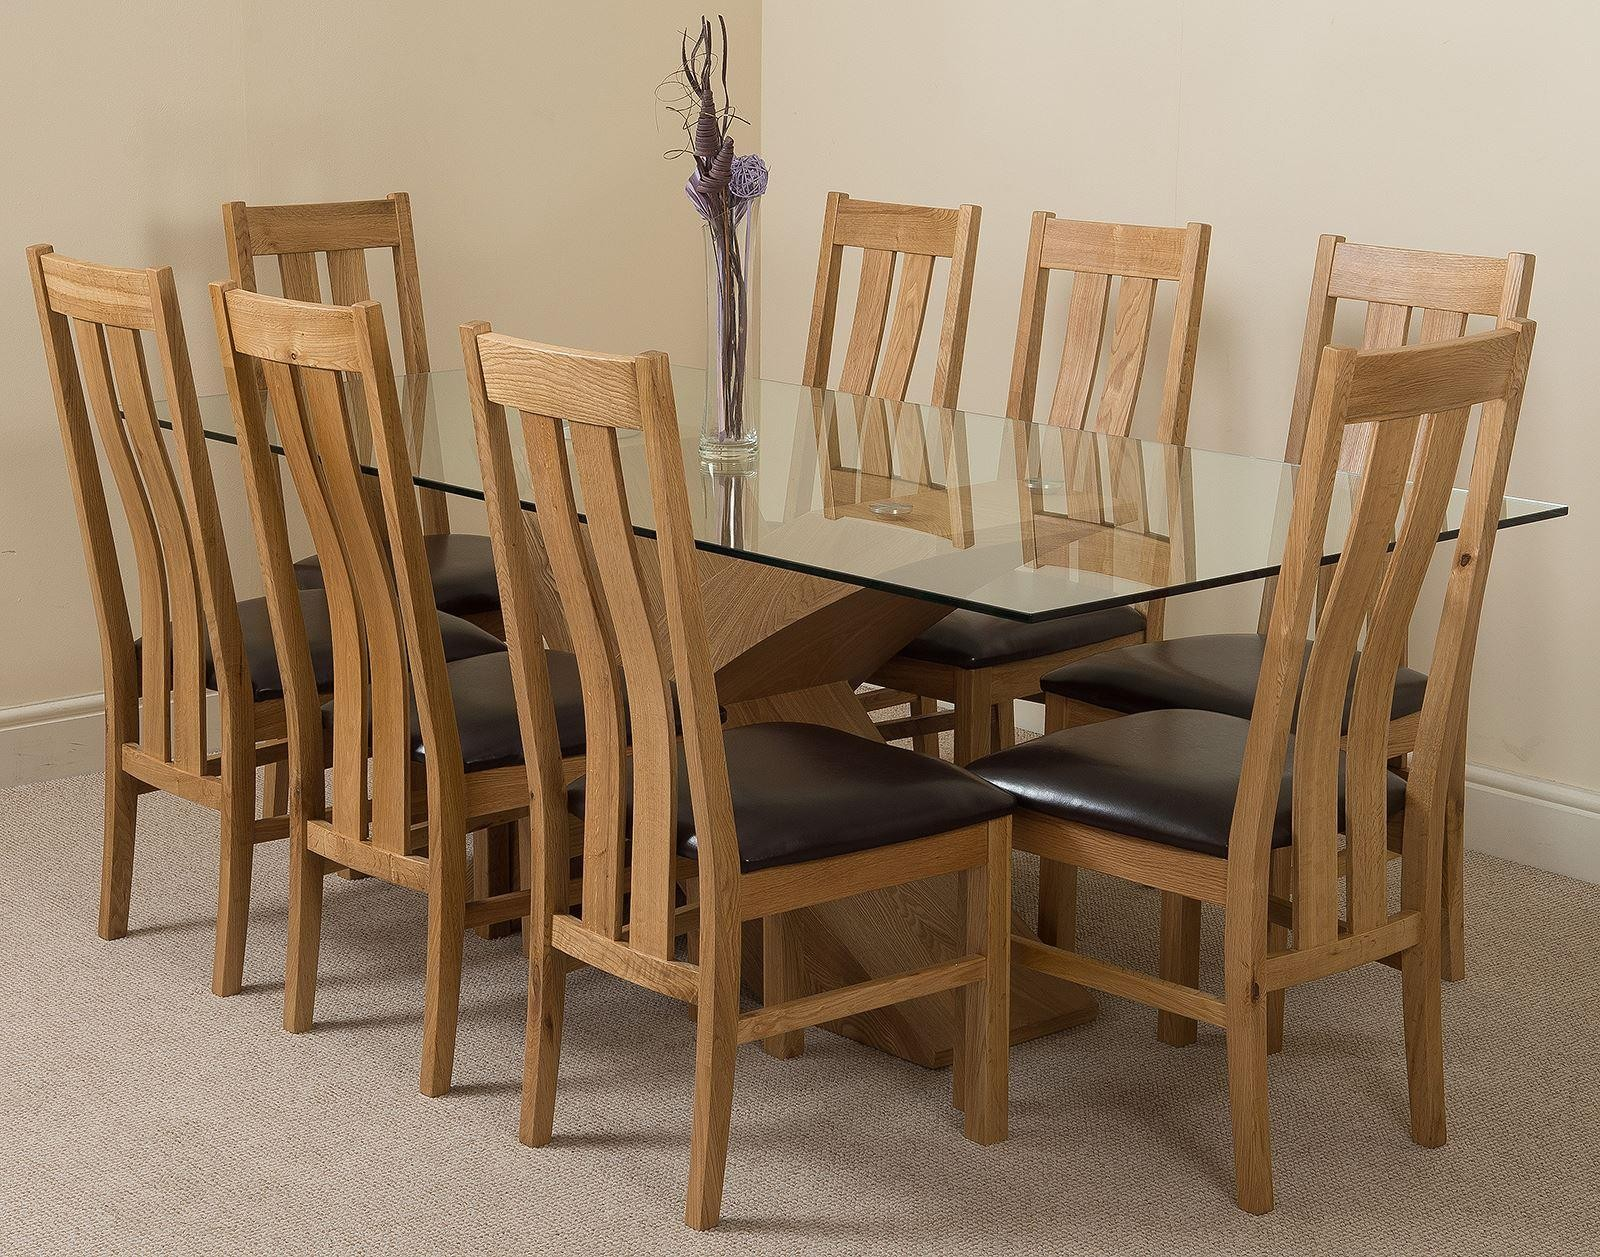 Valencia Oak 200cm Wood and Glass Dining Table with 8 Princeton Solid Oak Dining Chairs [Light Oak and Brown Leather]